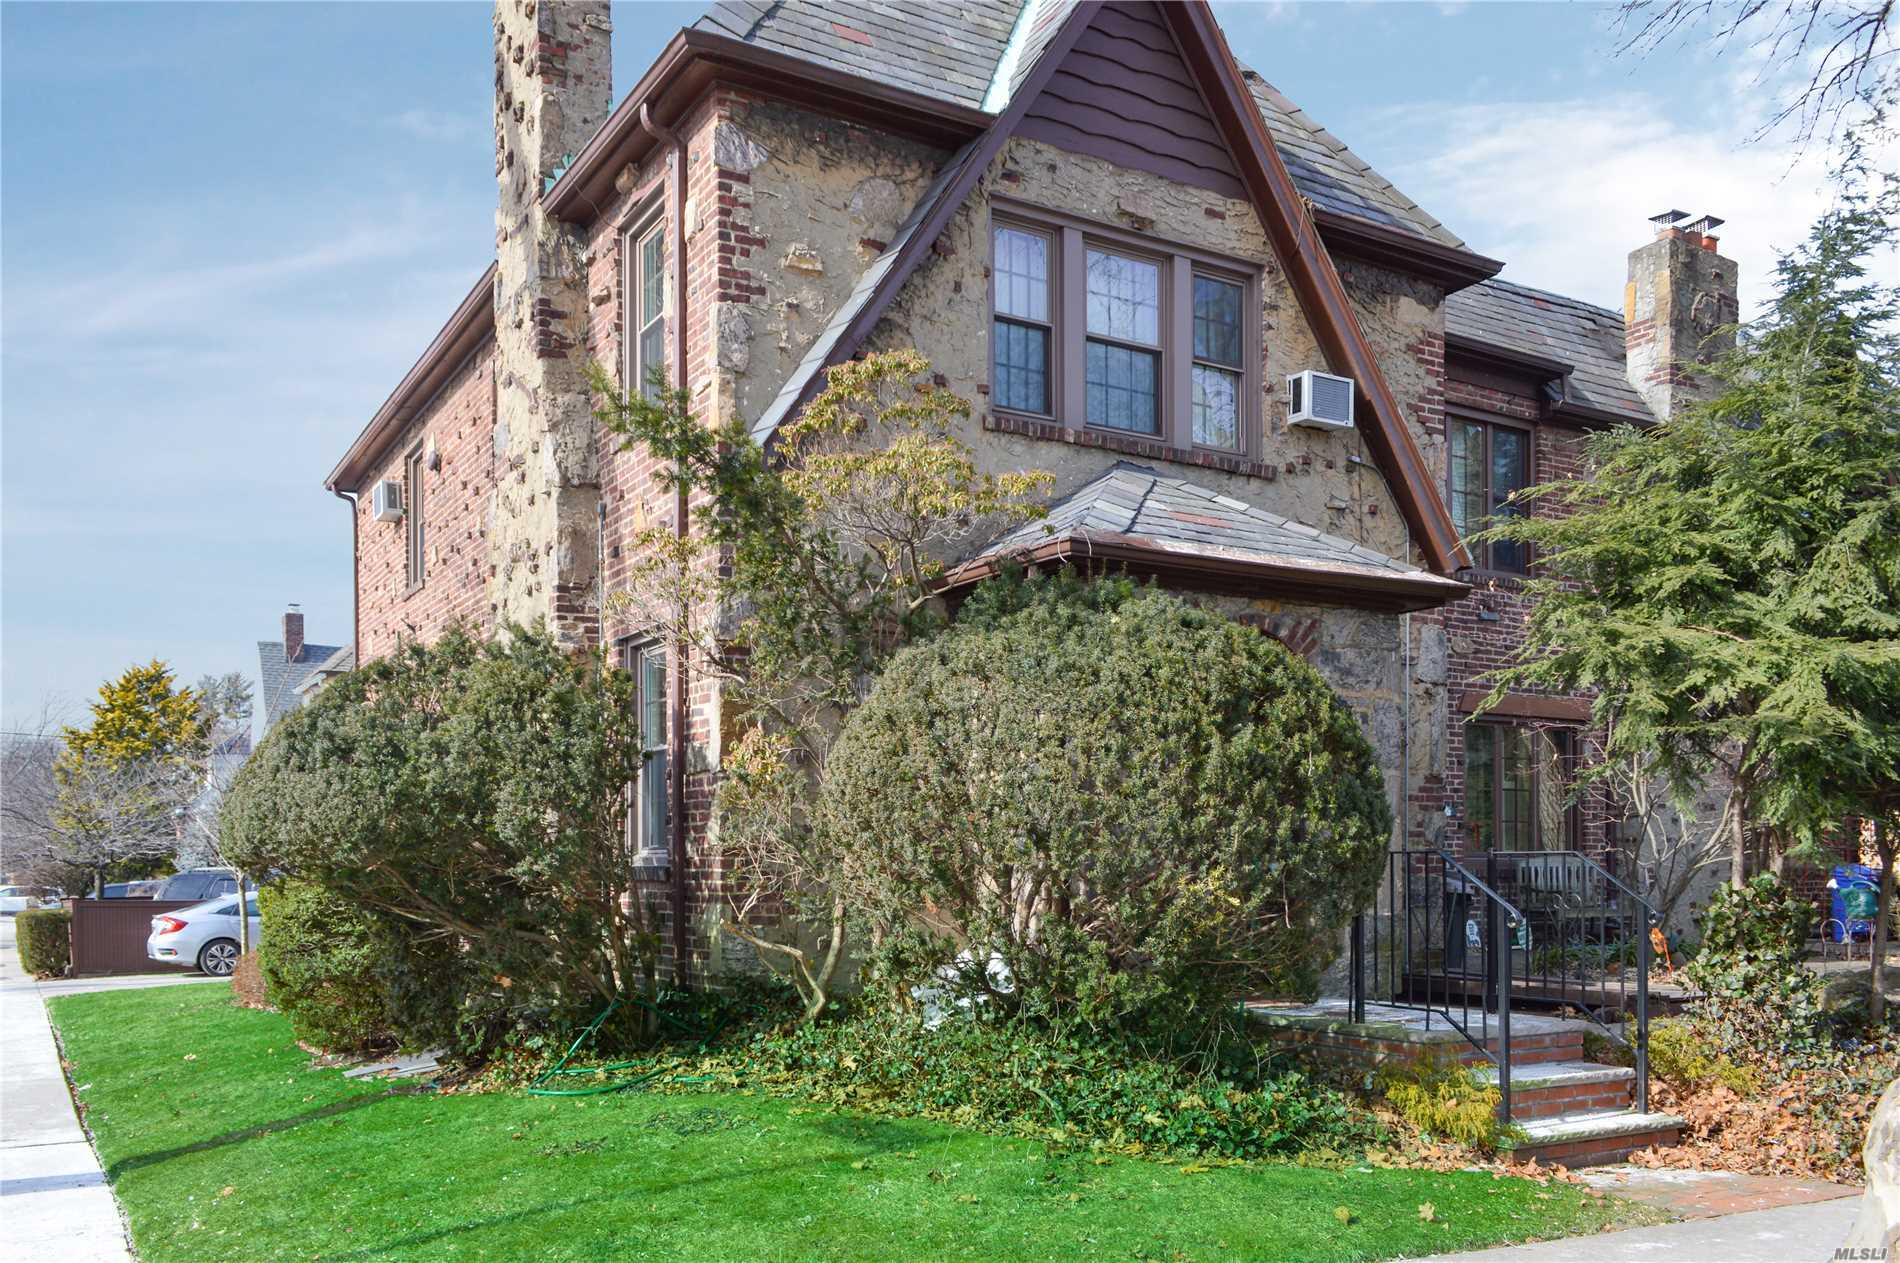 Corner Solidly Contructed Of Brick & Stone Semi-Detached Beautiful English Tudor In Bowne Park Area Of Flushing North, With Spacious And Airy Layout, High Ceilings, Original Preserved Wood Floors, Fireplace (Behind Wall), Skylight, Covered Wood Deck, Conveniently Located Near Transportation (Q16, Lirr-Broadway Station) Schools (Ps 32 Is 25) Shopping And Park. Ideal For Buyers Looking For A House With Character And Great Bones, Ready To Add Own Personal Touches To It.